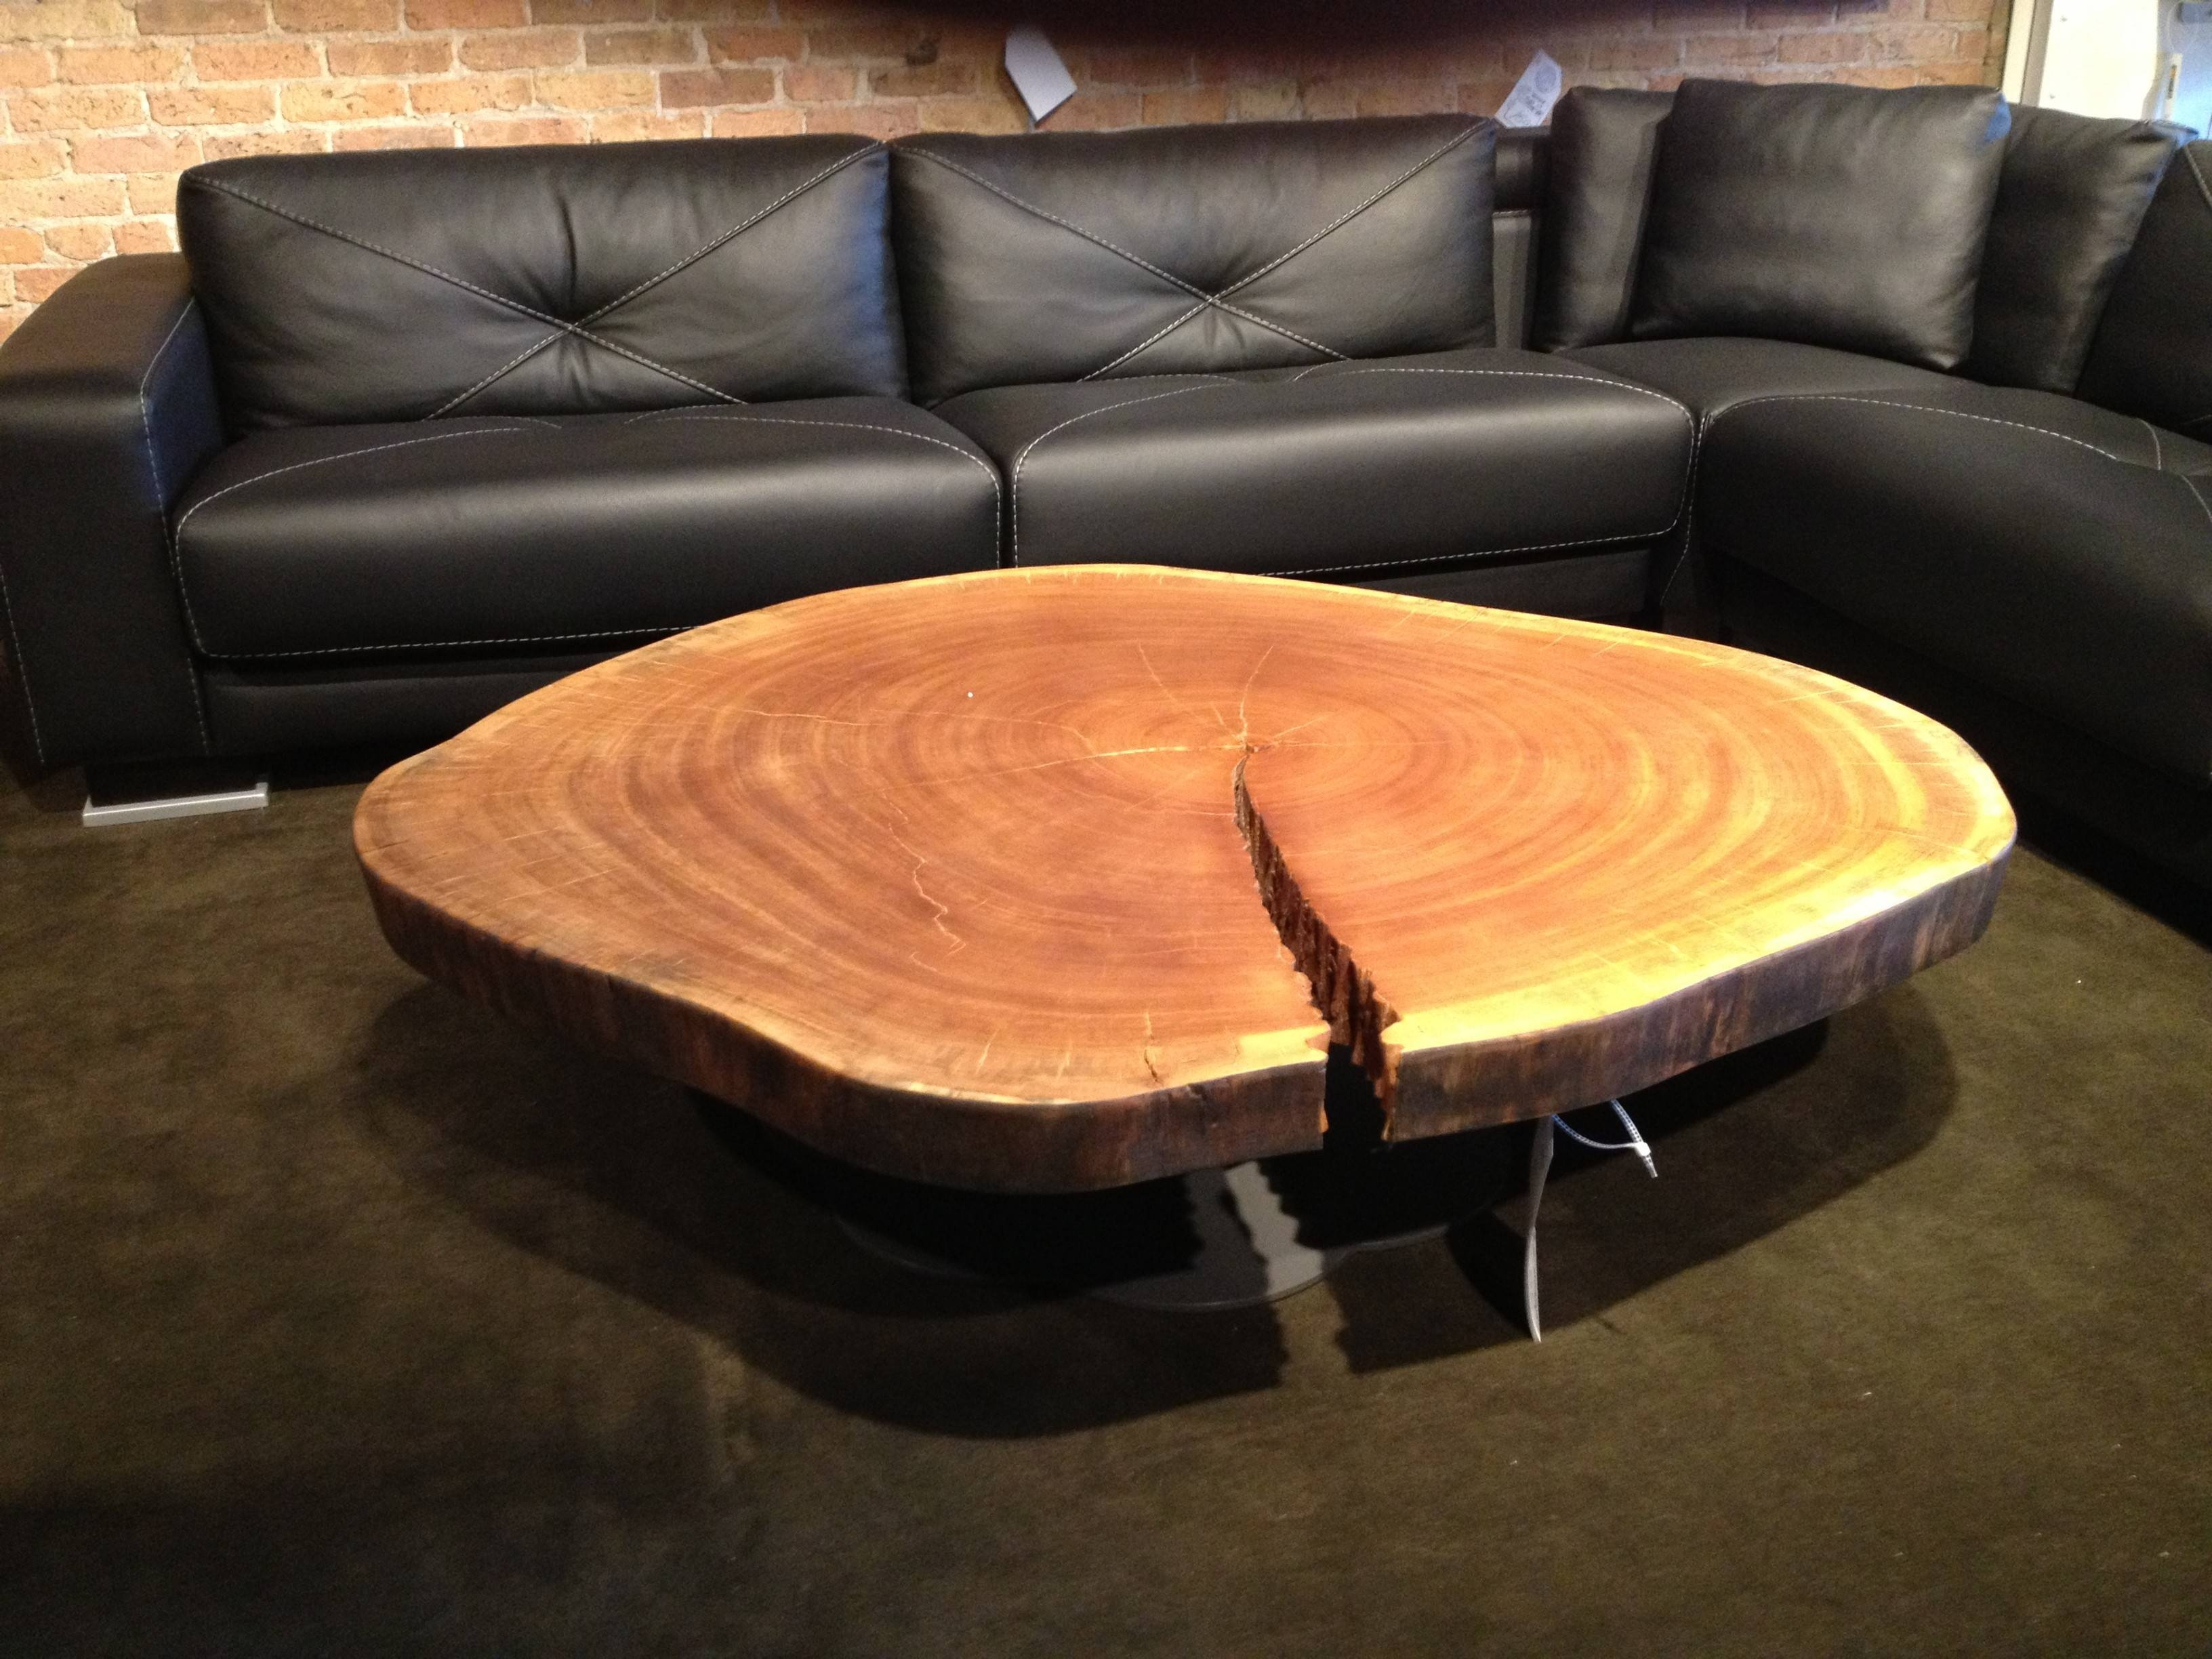 15 Ideas of Tree Trunk Coffee Table